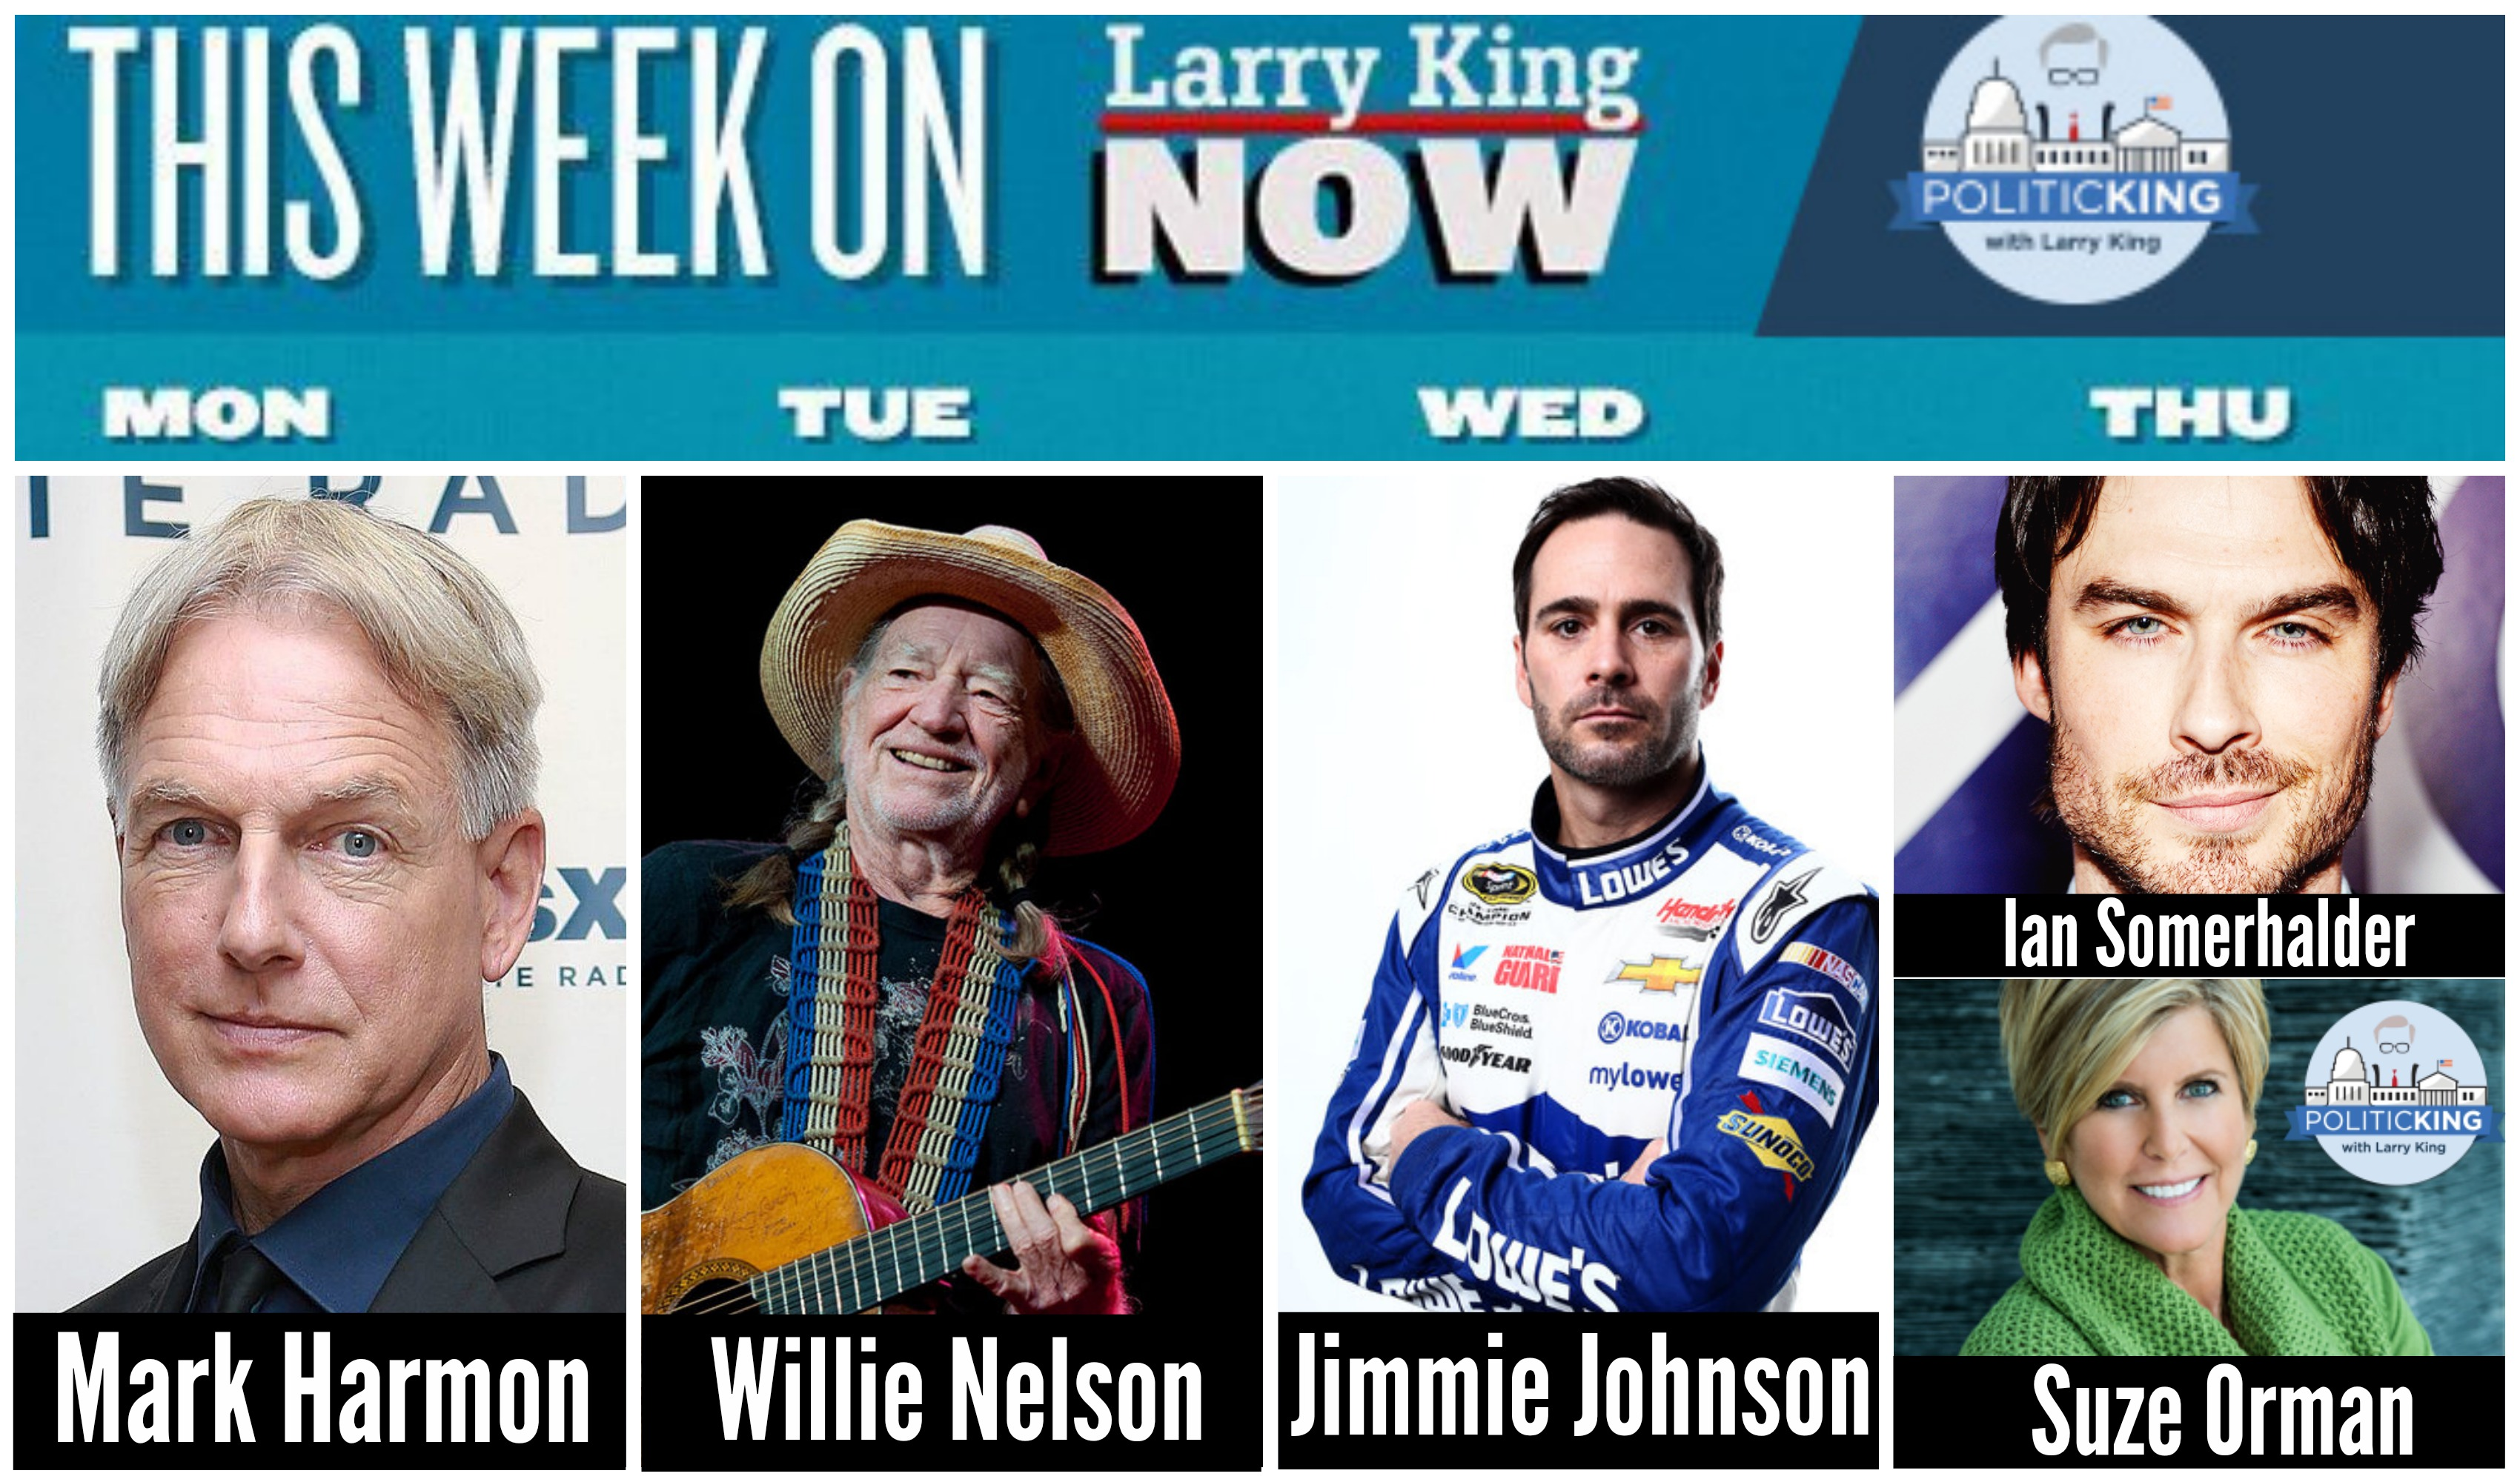 This Week on Larry King Now - Mark Harmon, Willie Nelson, Jimmie Johnson, Ian Somerhalder PLUS 'PoliticKING with Suze Orman